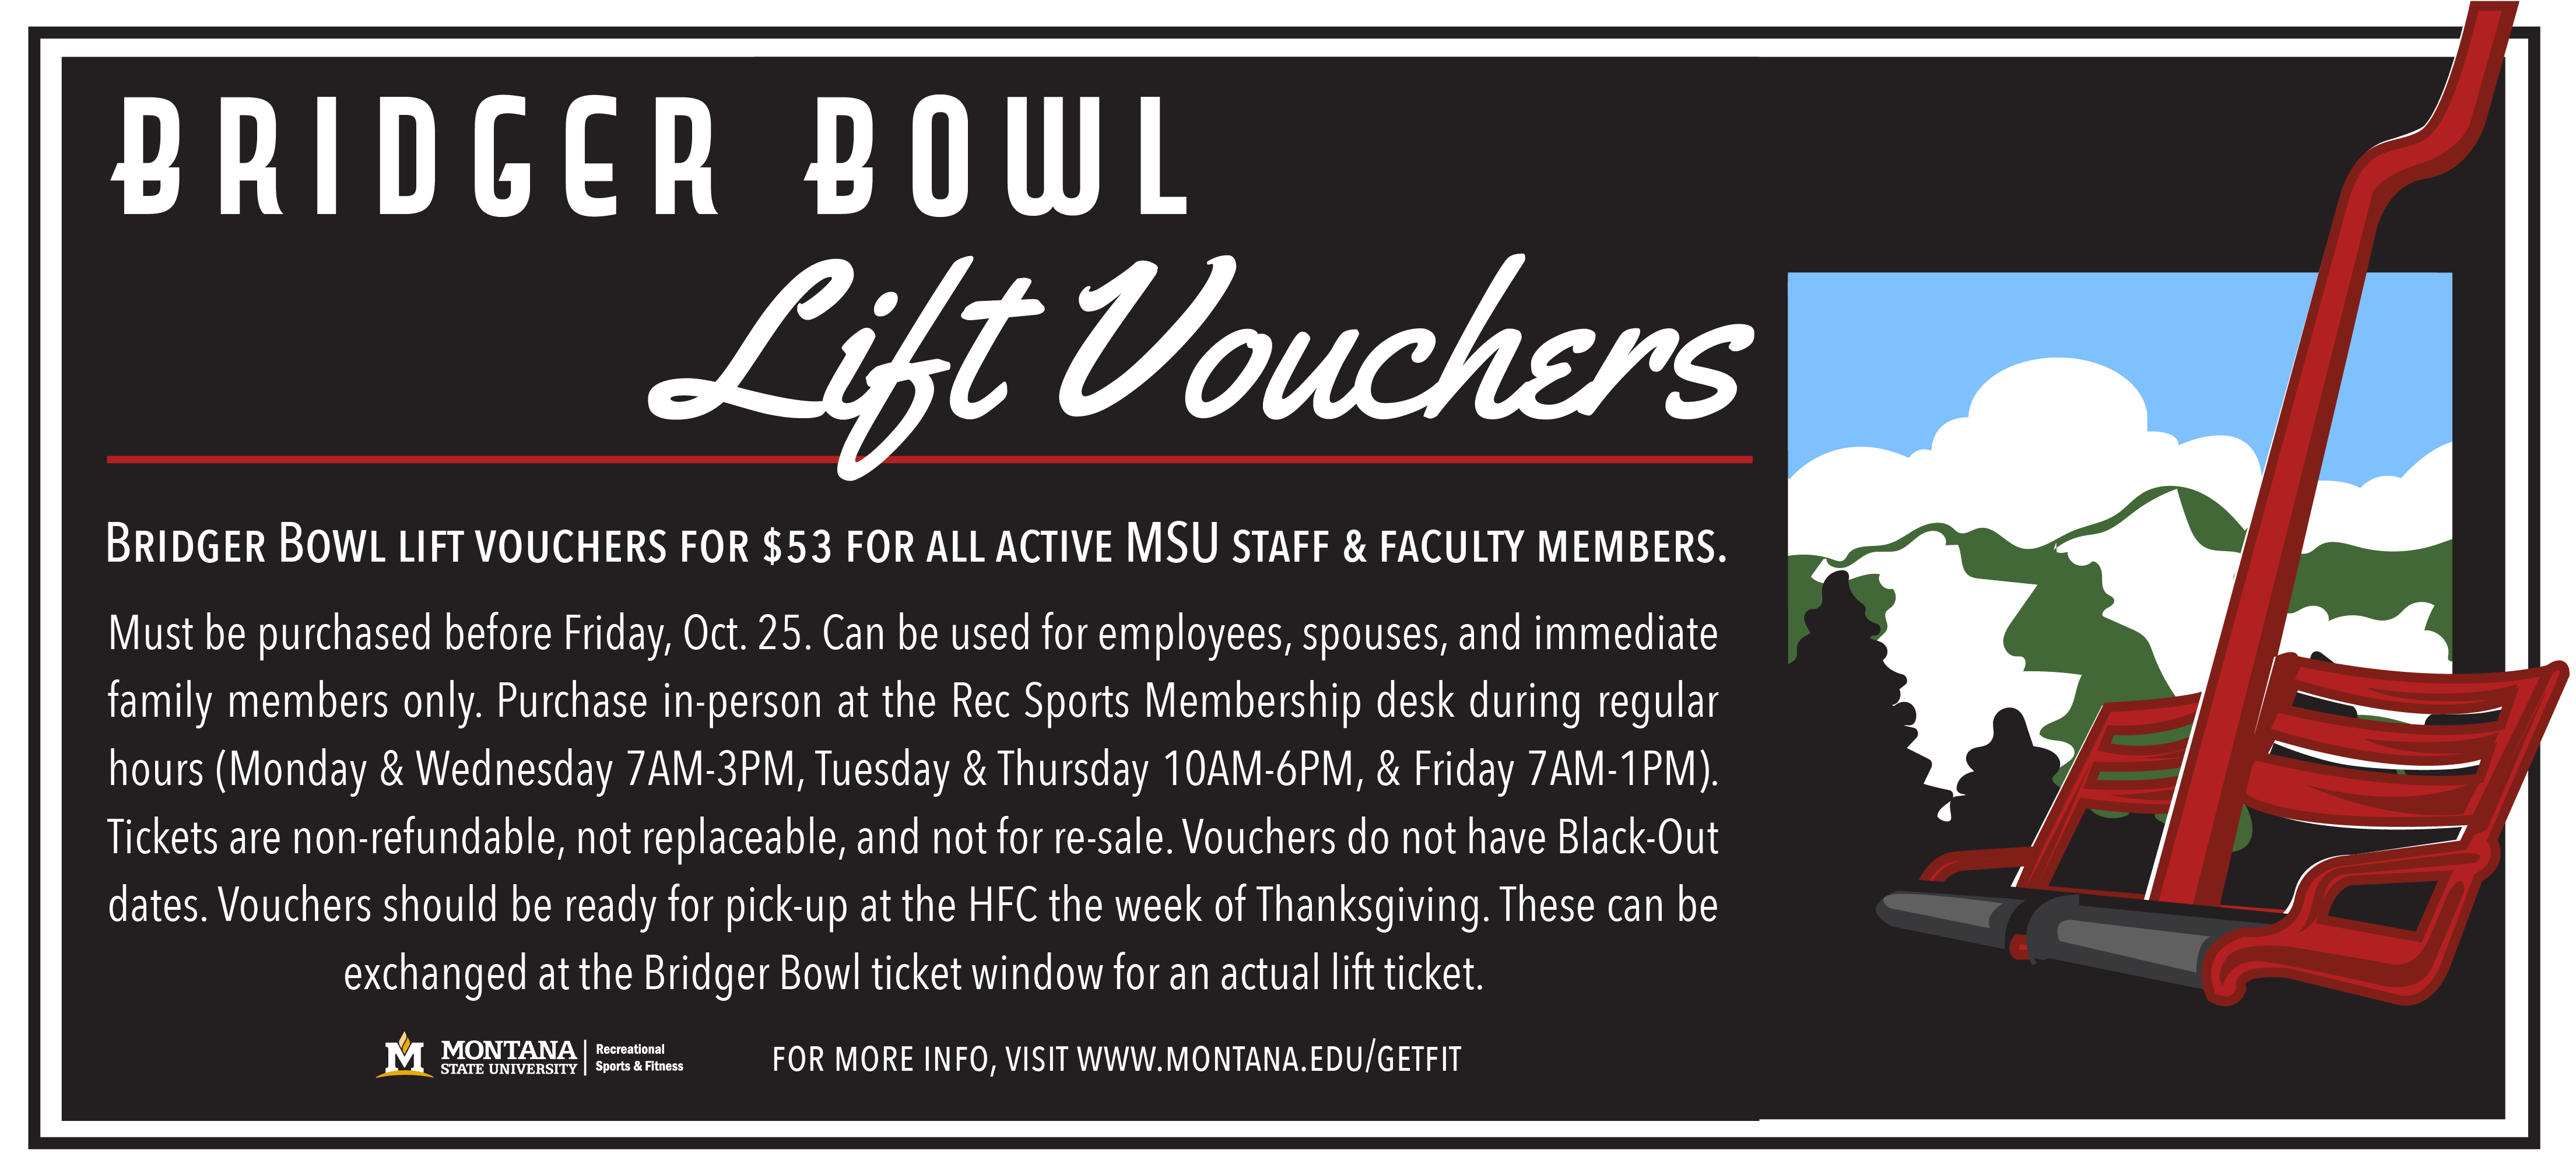 Full-day Bridger Bowl Lift Vouchers are on sale for $53 at the Hosaeus Fitness Center's Membership Services Desk.  These may be used by MSU employees, their spouses and immediate dependents.  Please call 406-994-5000 for more information. They must be purchased before October 25 and used during the 2019/20 season.